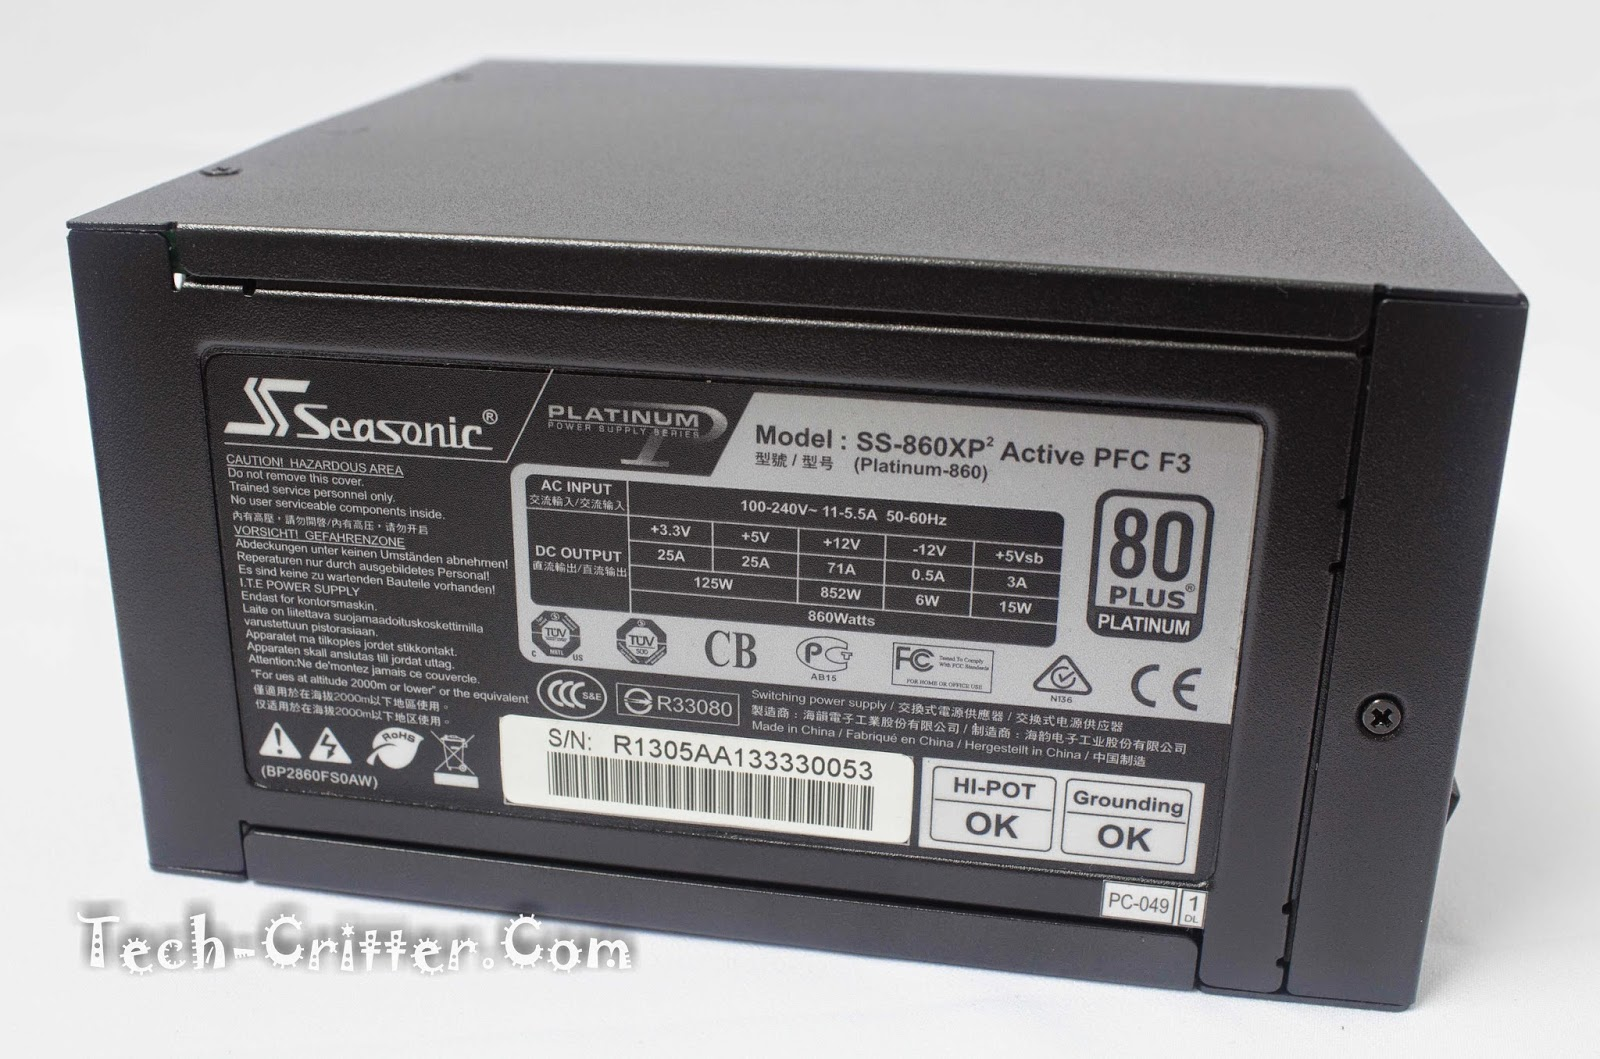 Unboxing & Overview: Seasonic Platinum Series 860W Power Supply Unit 64